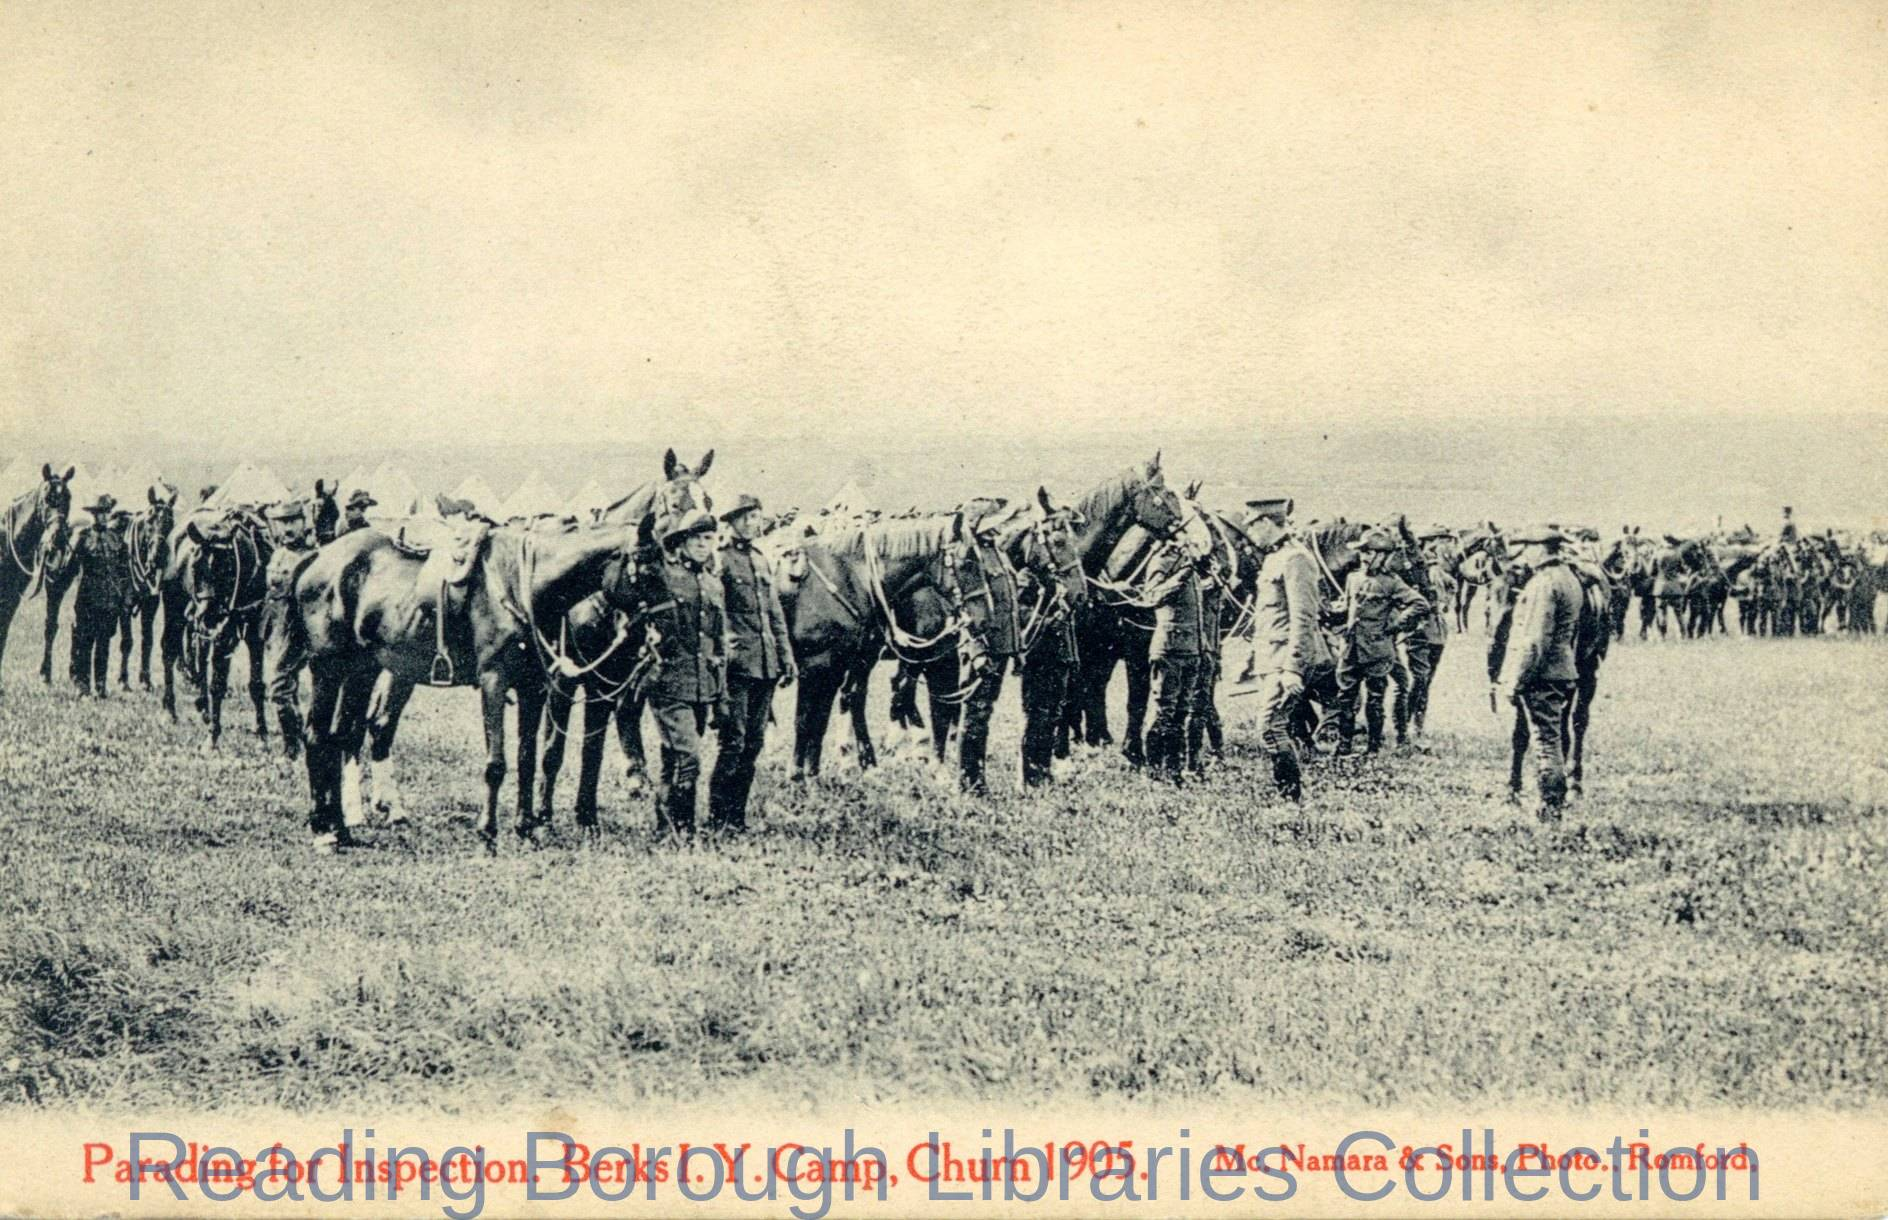 Summer Training Camp; Parading for Inspection. Berks Imperial Yeomanry Camp, Churn, 1905.